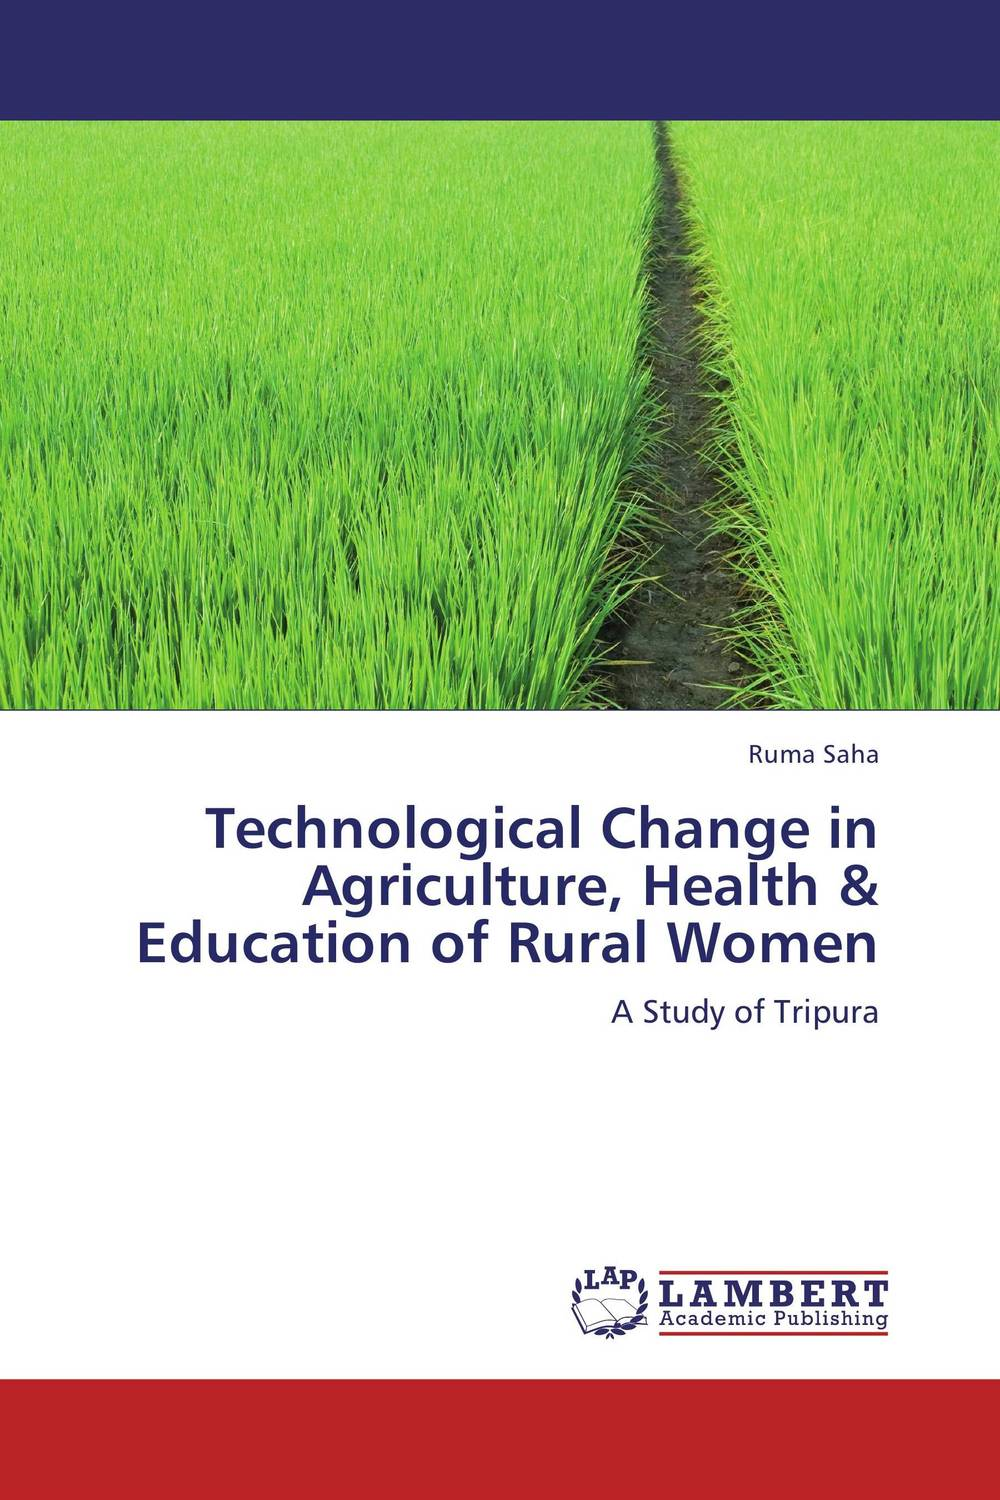 Technological Change in Agriculture, Health & Education of Rural Women women as work force in rural india